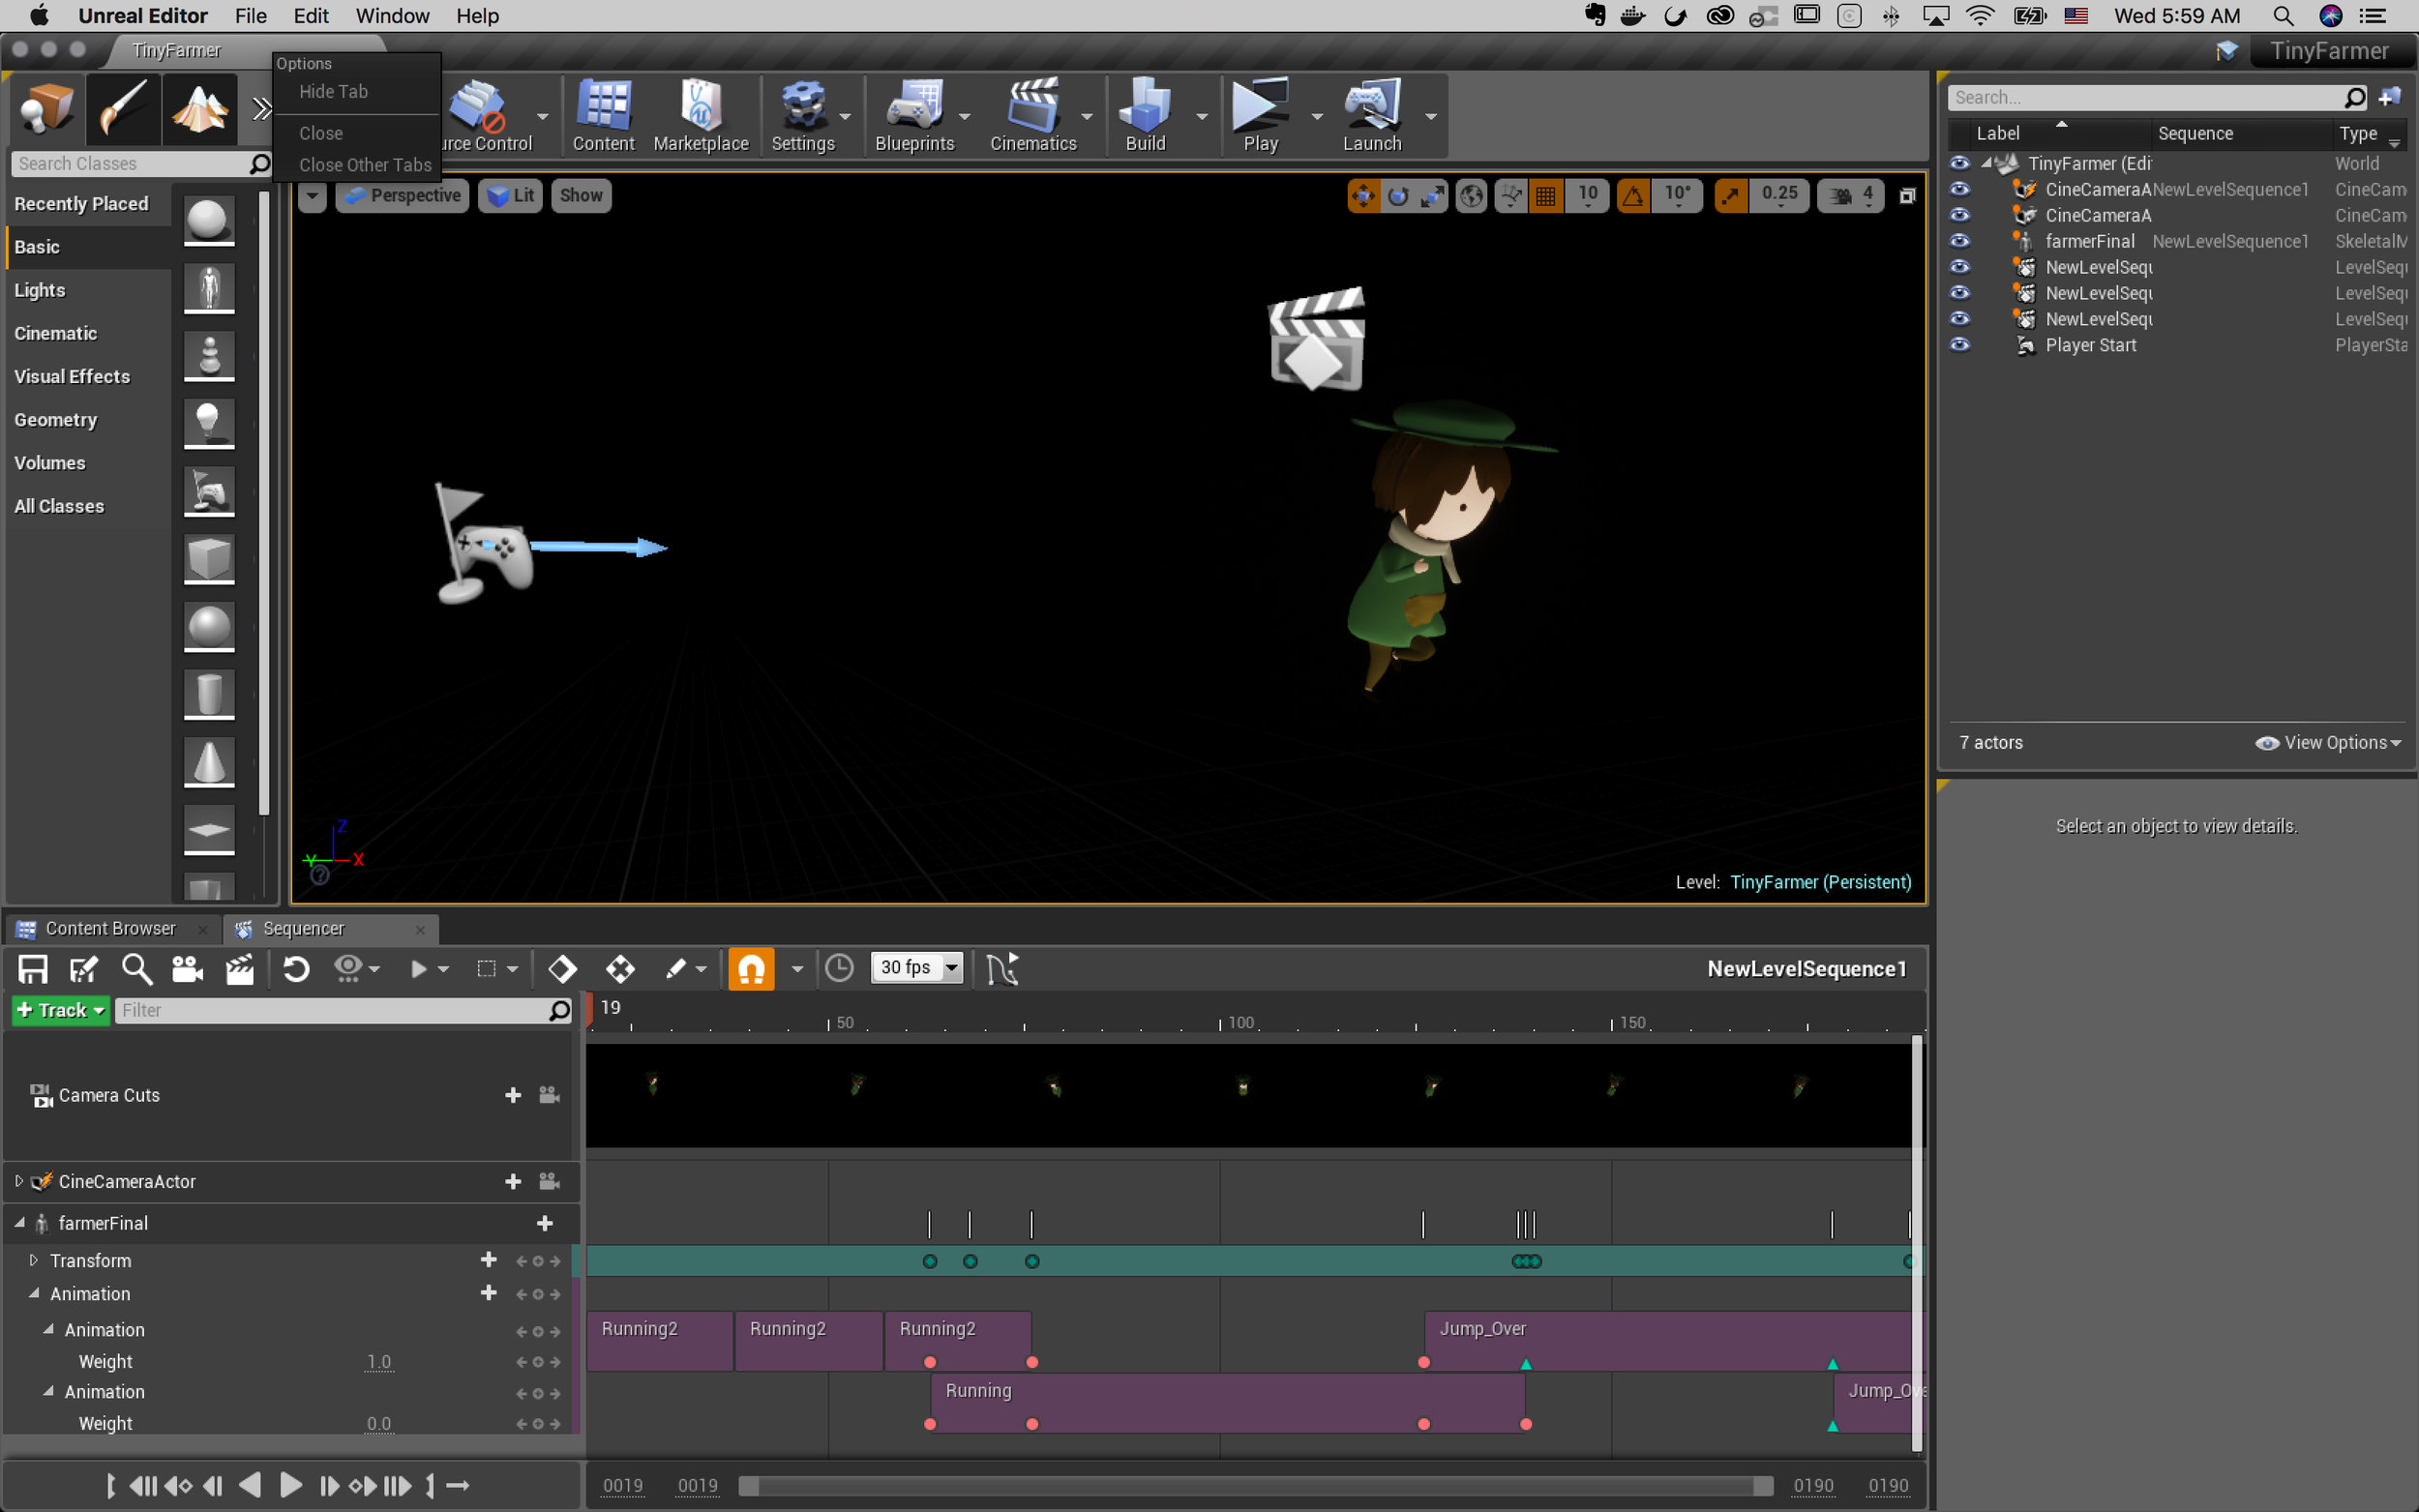 Use Unreal sequencer to combine animation clips